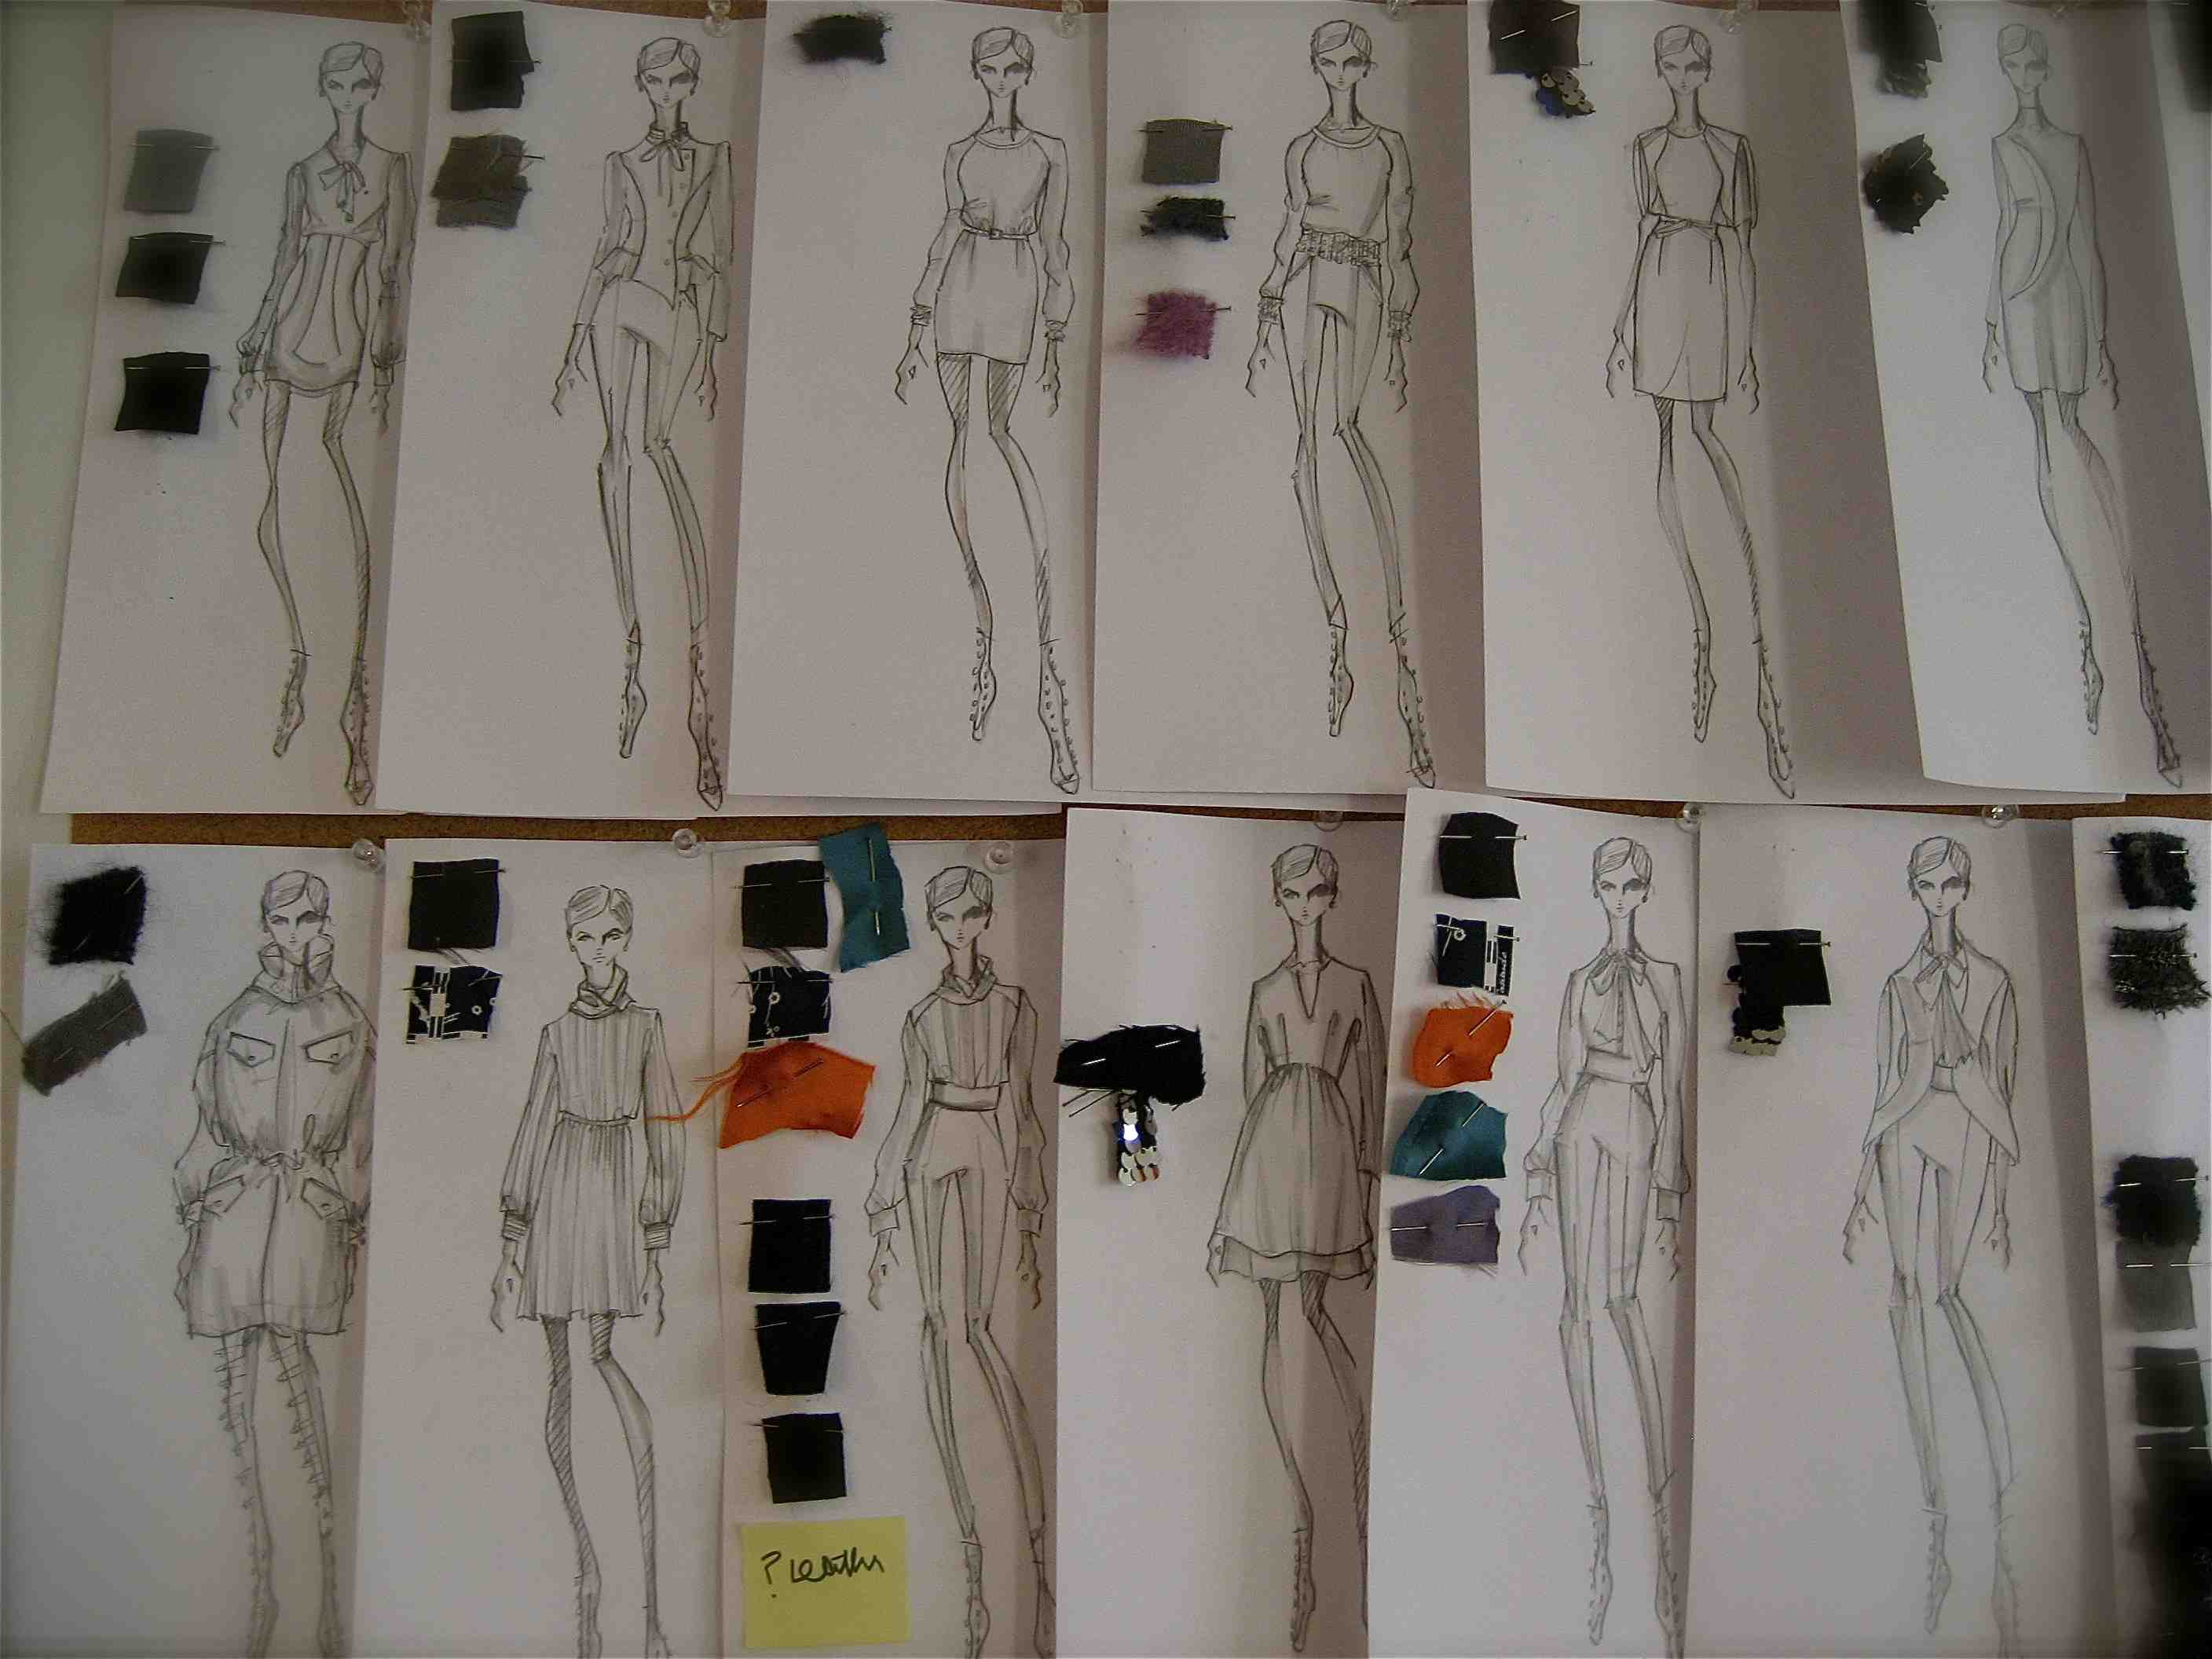 2010-02-16-RuffiansketchesBigBangcollection.jpg